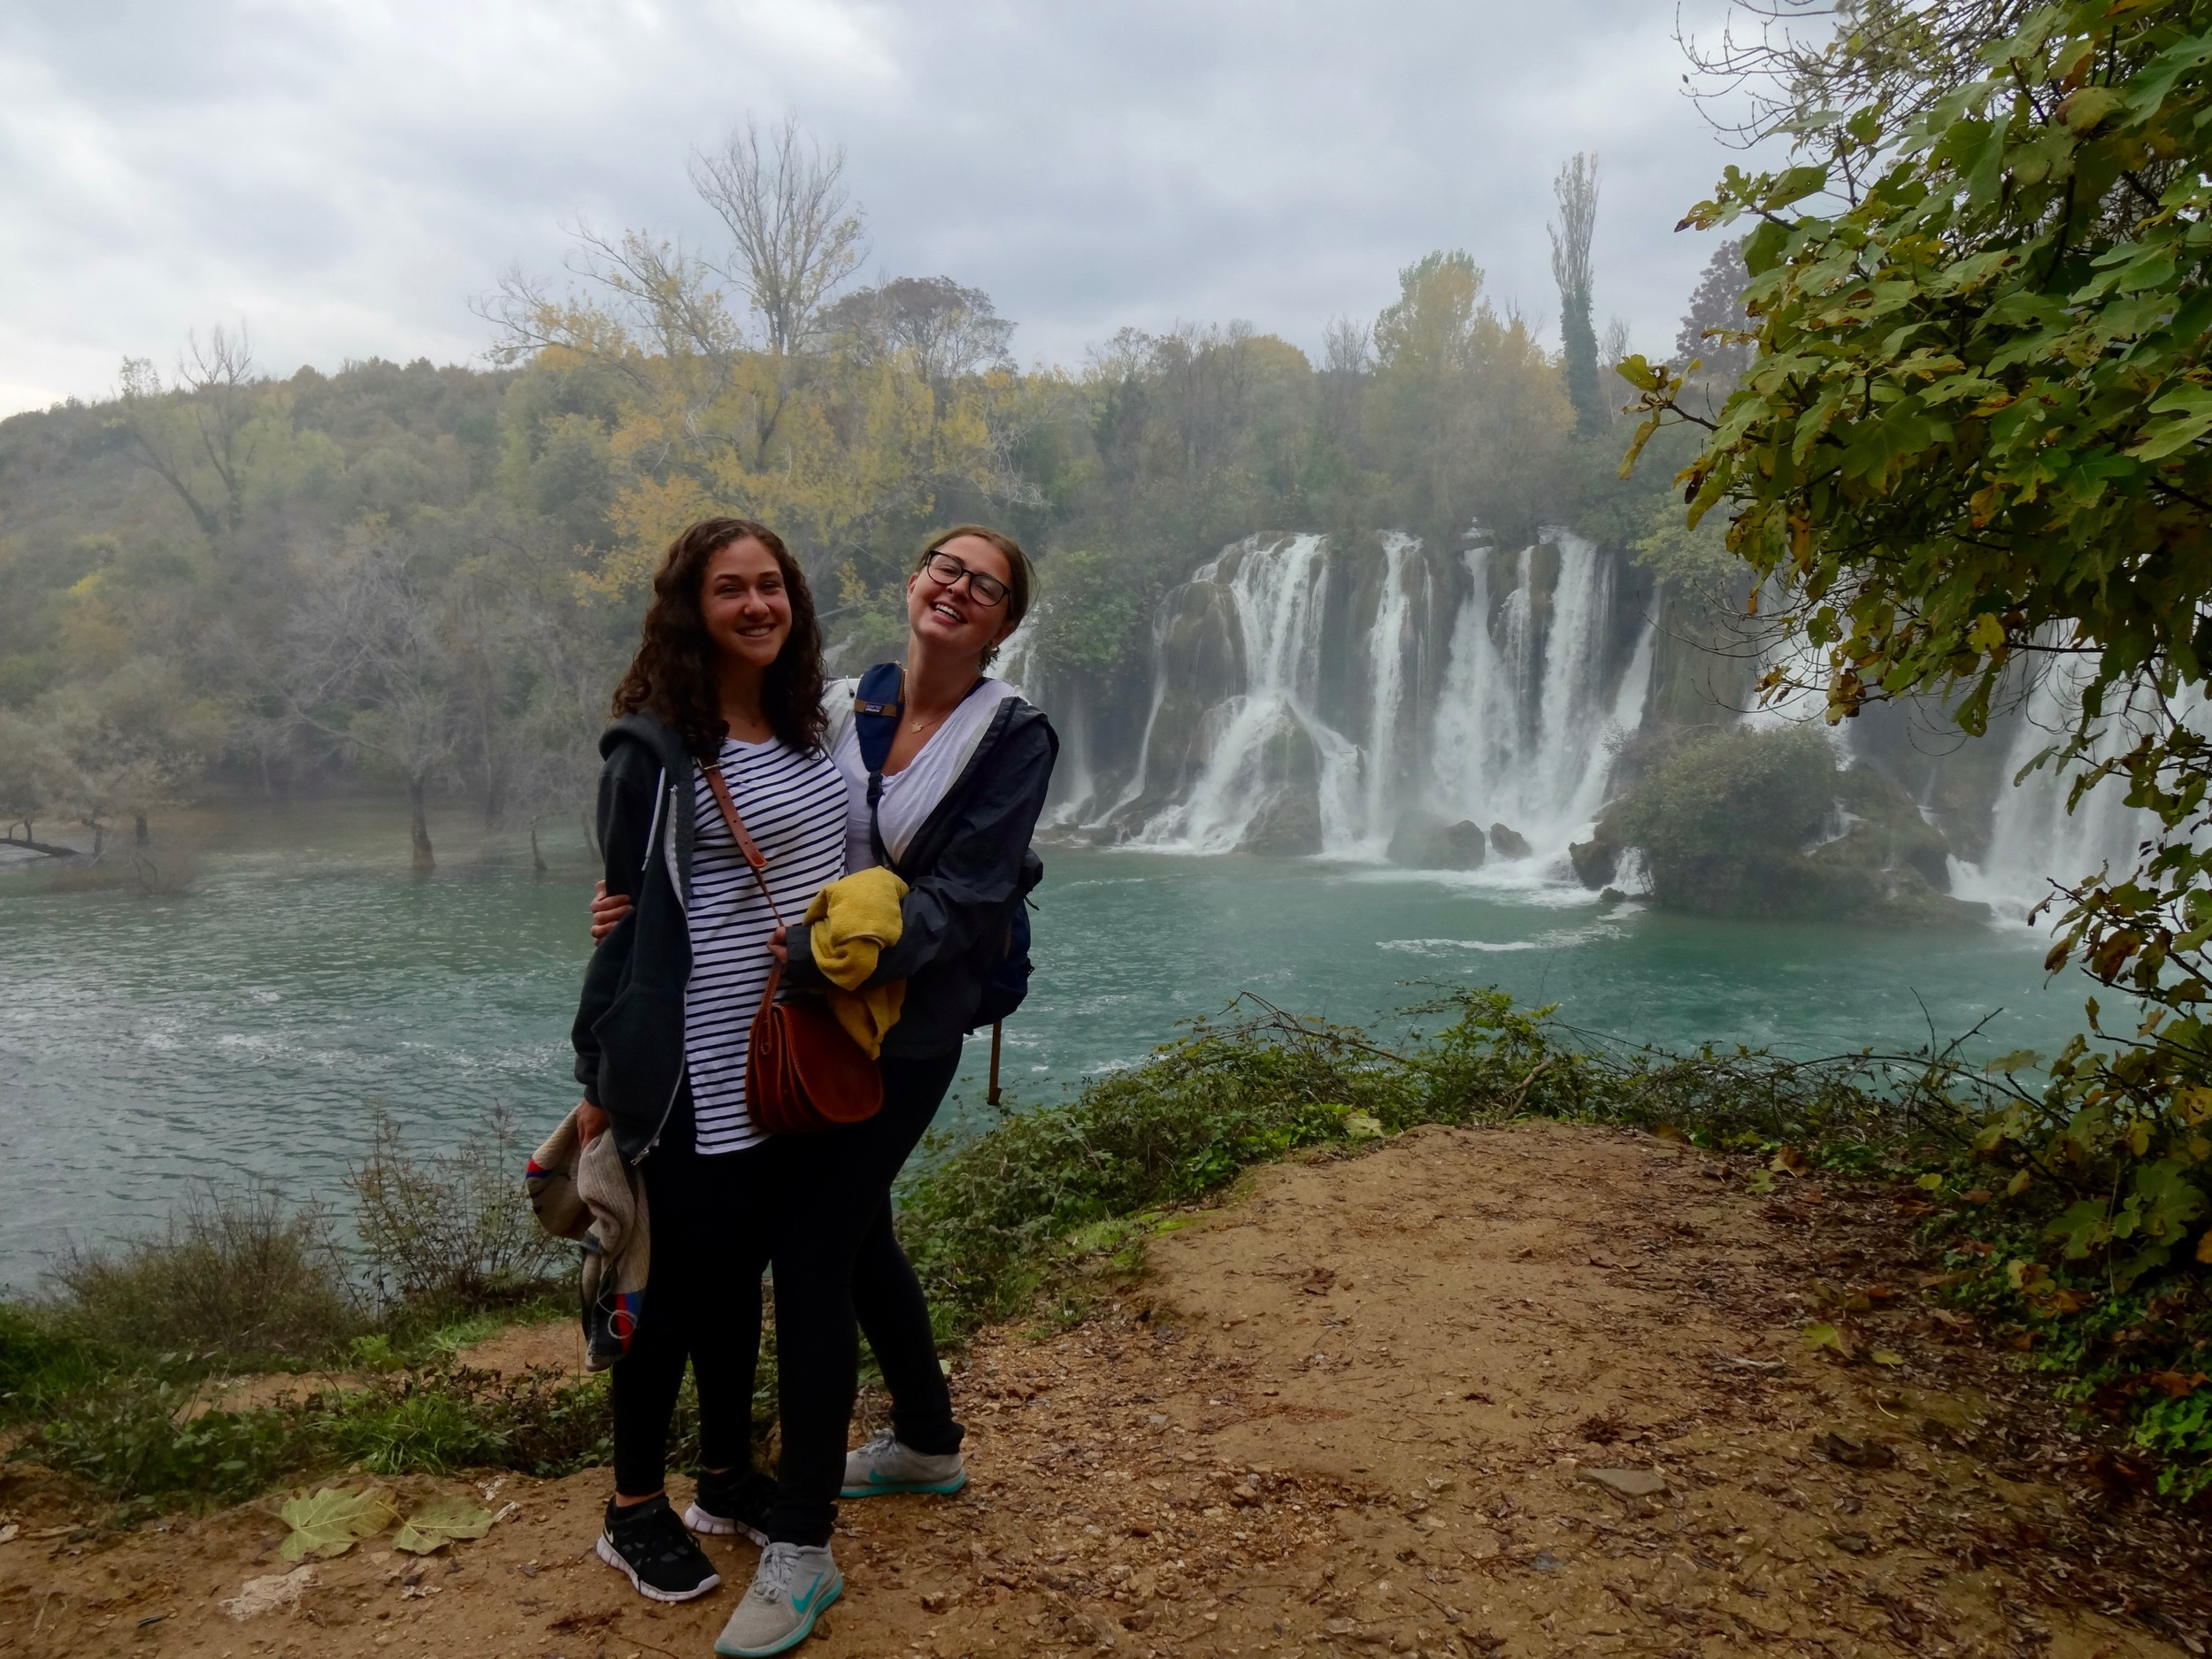 A private tour in bosnia was not in our budget... but we made it work, and i am so glad we did! mostar, bosnia - m.quigley